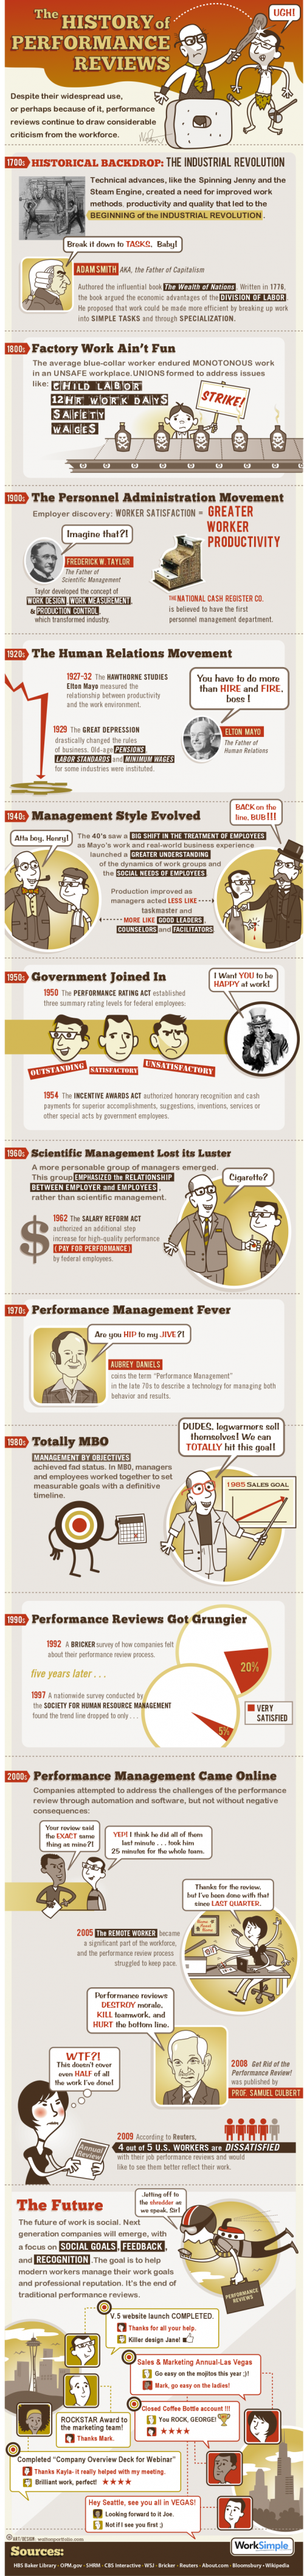 Job Performance Reviews